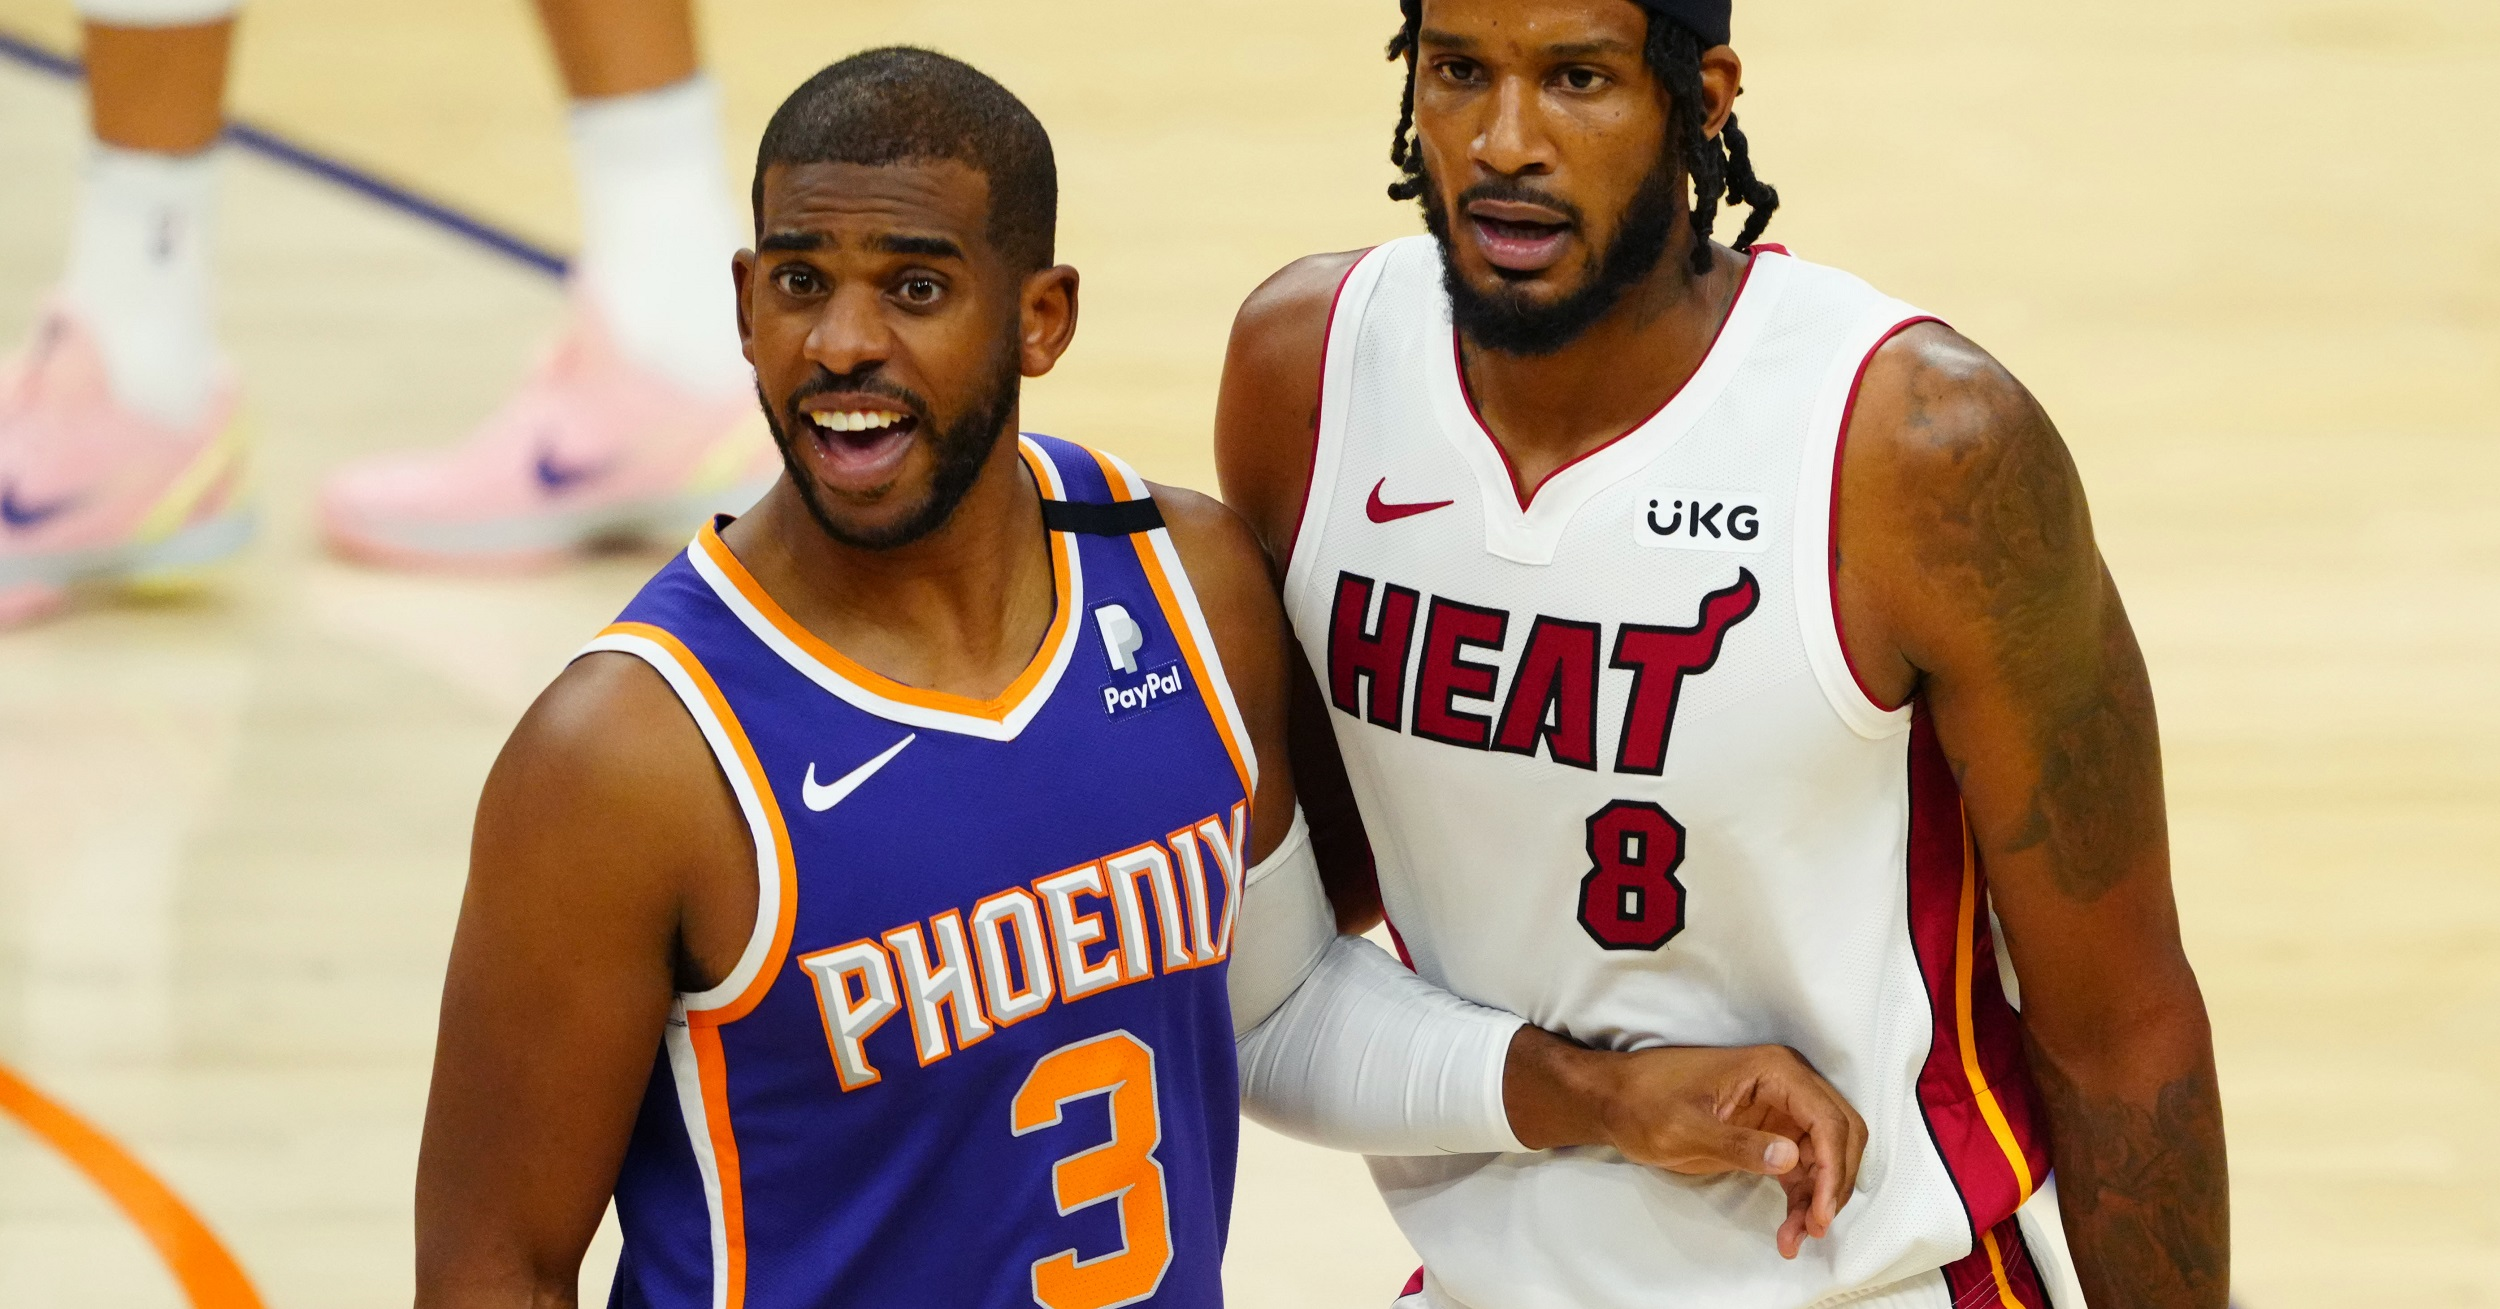 Phoenix Suns guard Chris Paul moves to 5th in career steals